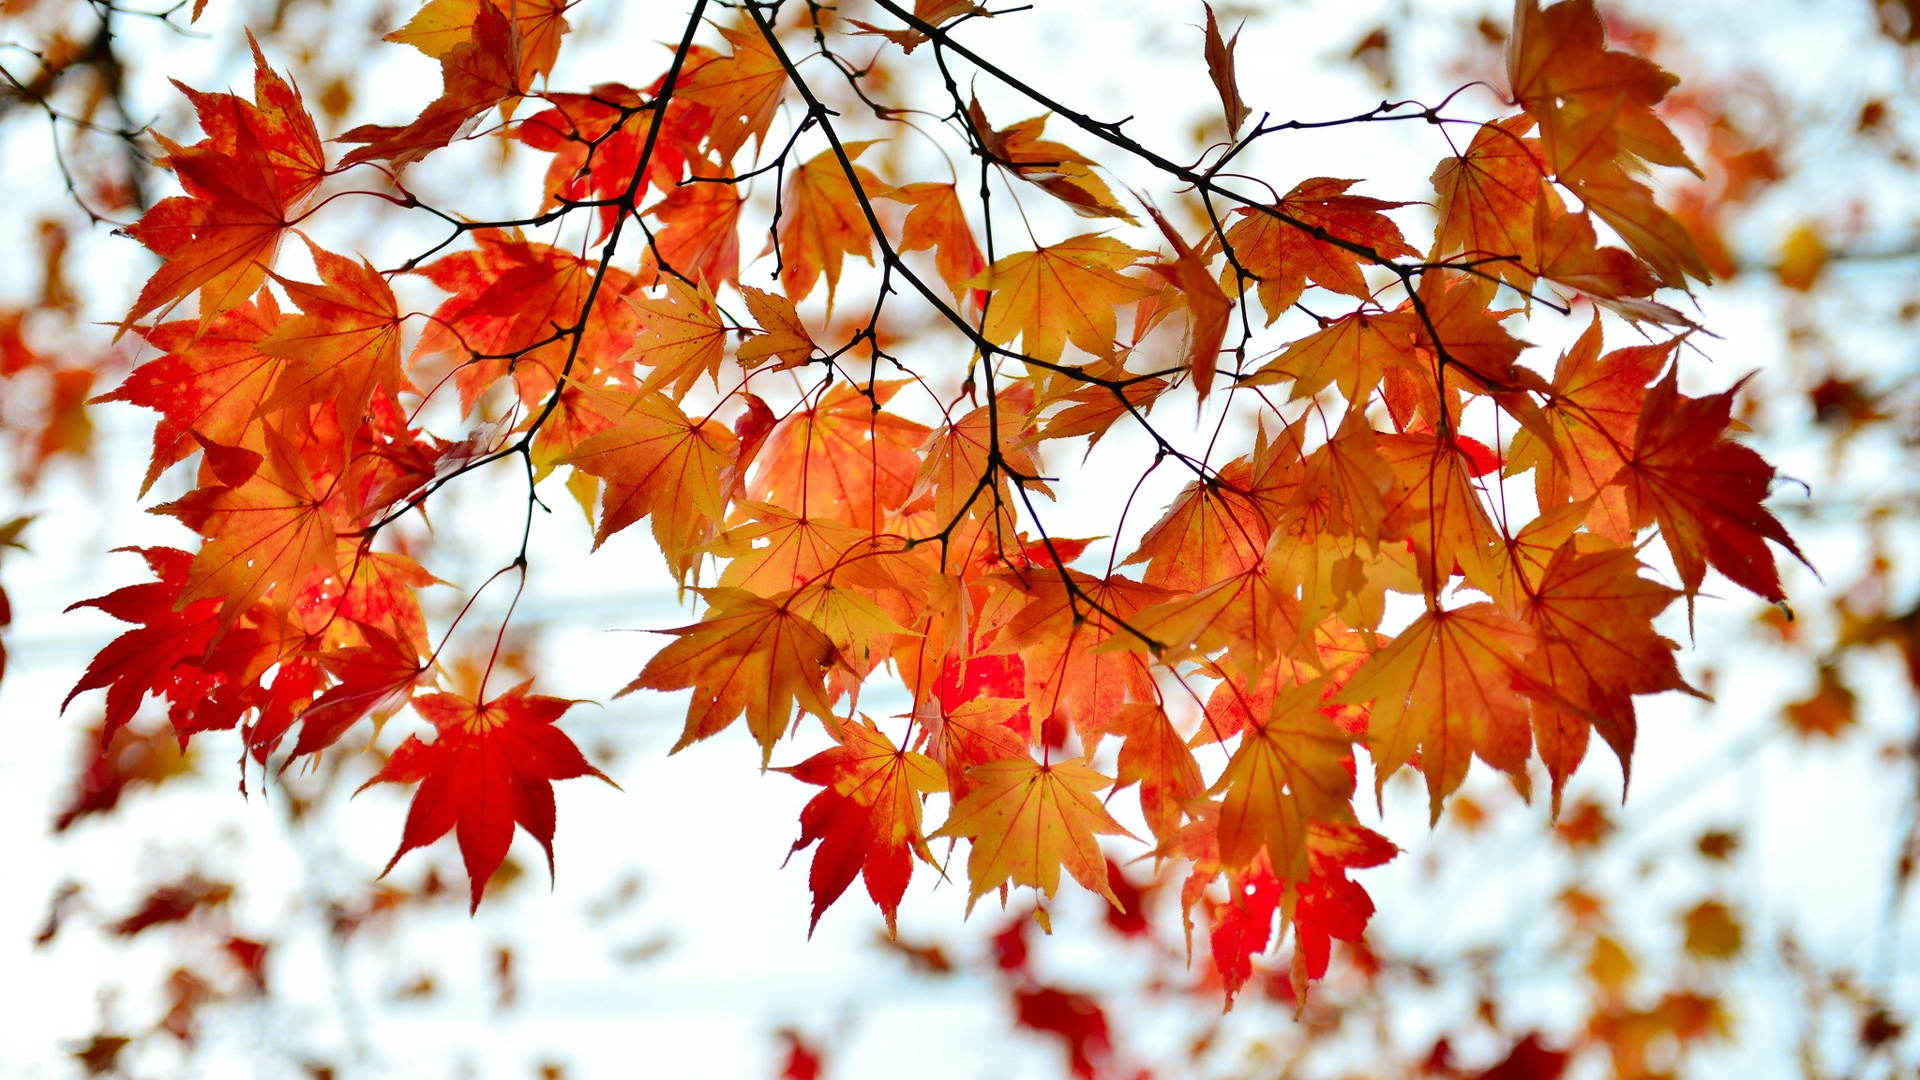 Wallpaper Autumn Branch Red Maple Leaves 1920x1200 Hd